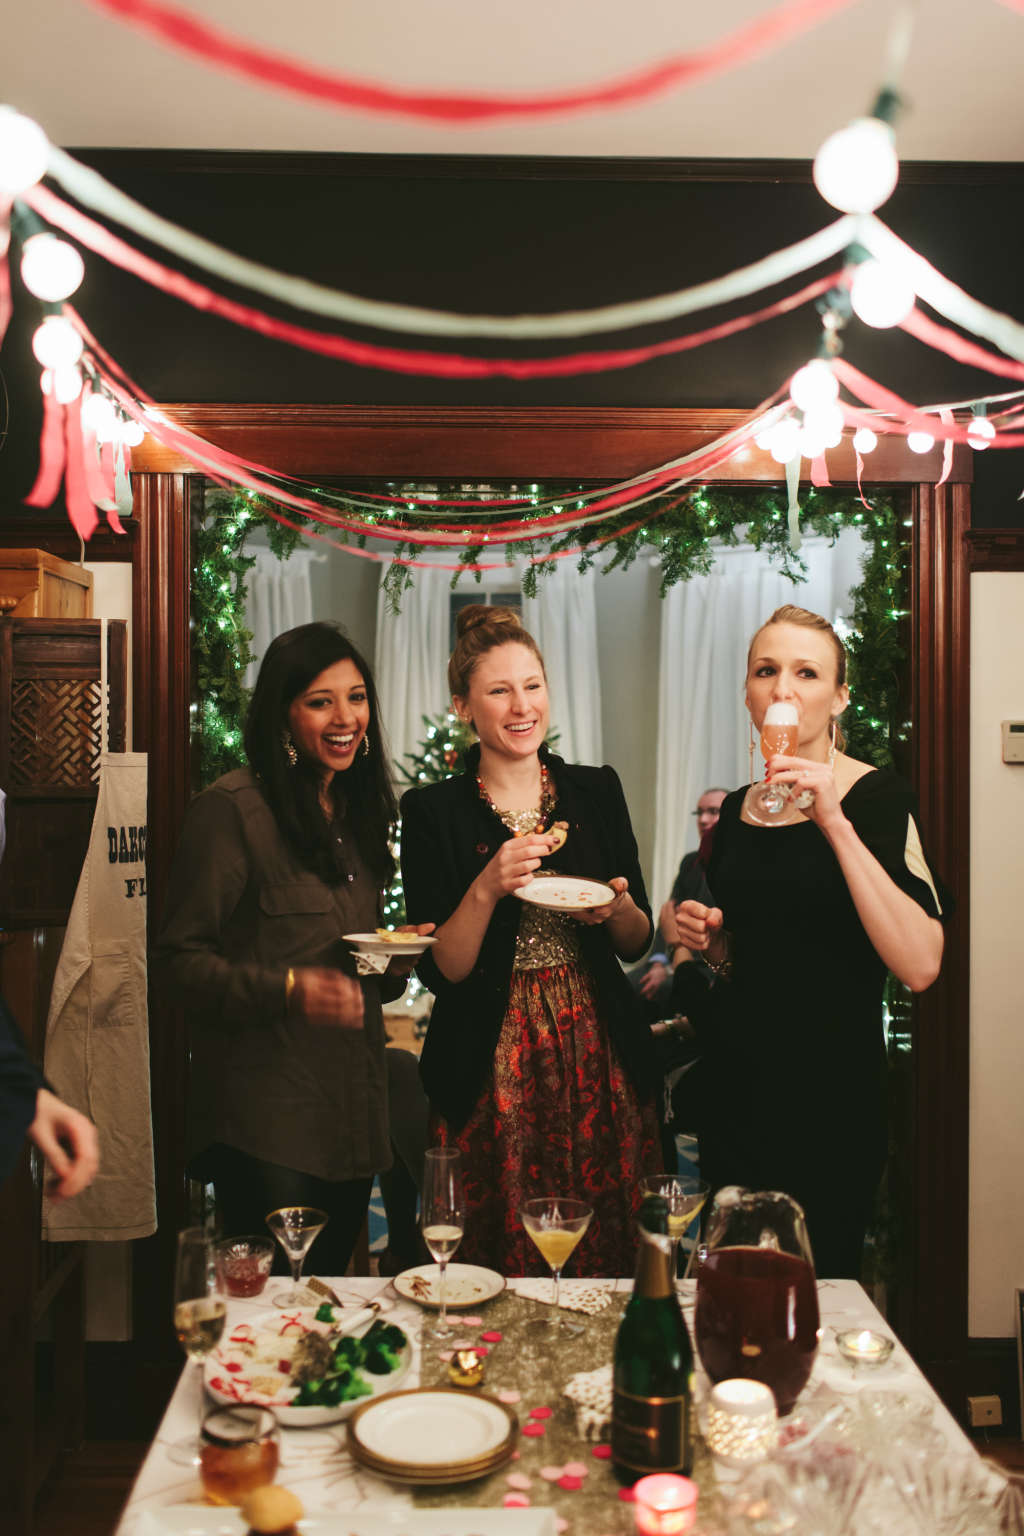 7 Top Tips For Throwing A Grand Party In A Small Home: Everything You Need To Throw A Fabulous Cocktail Party